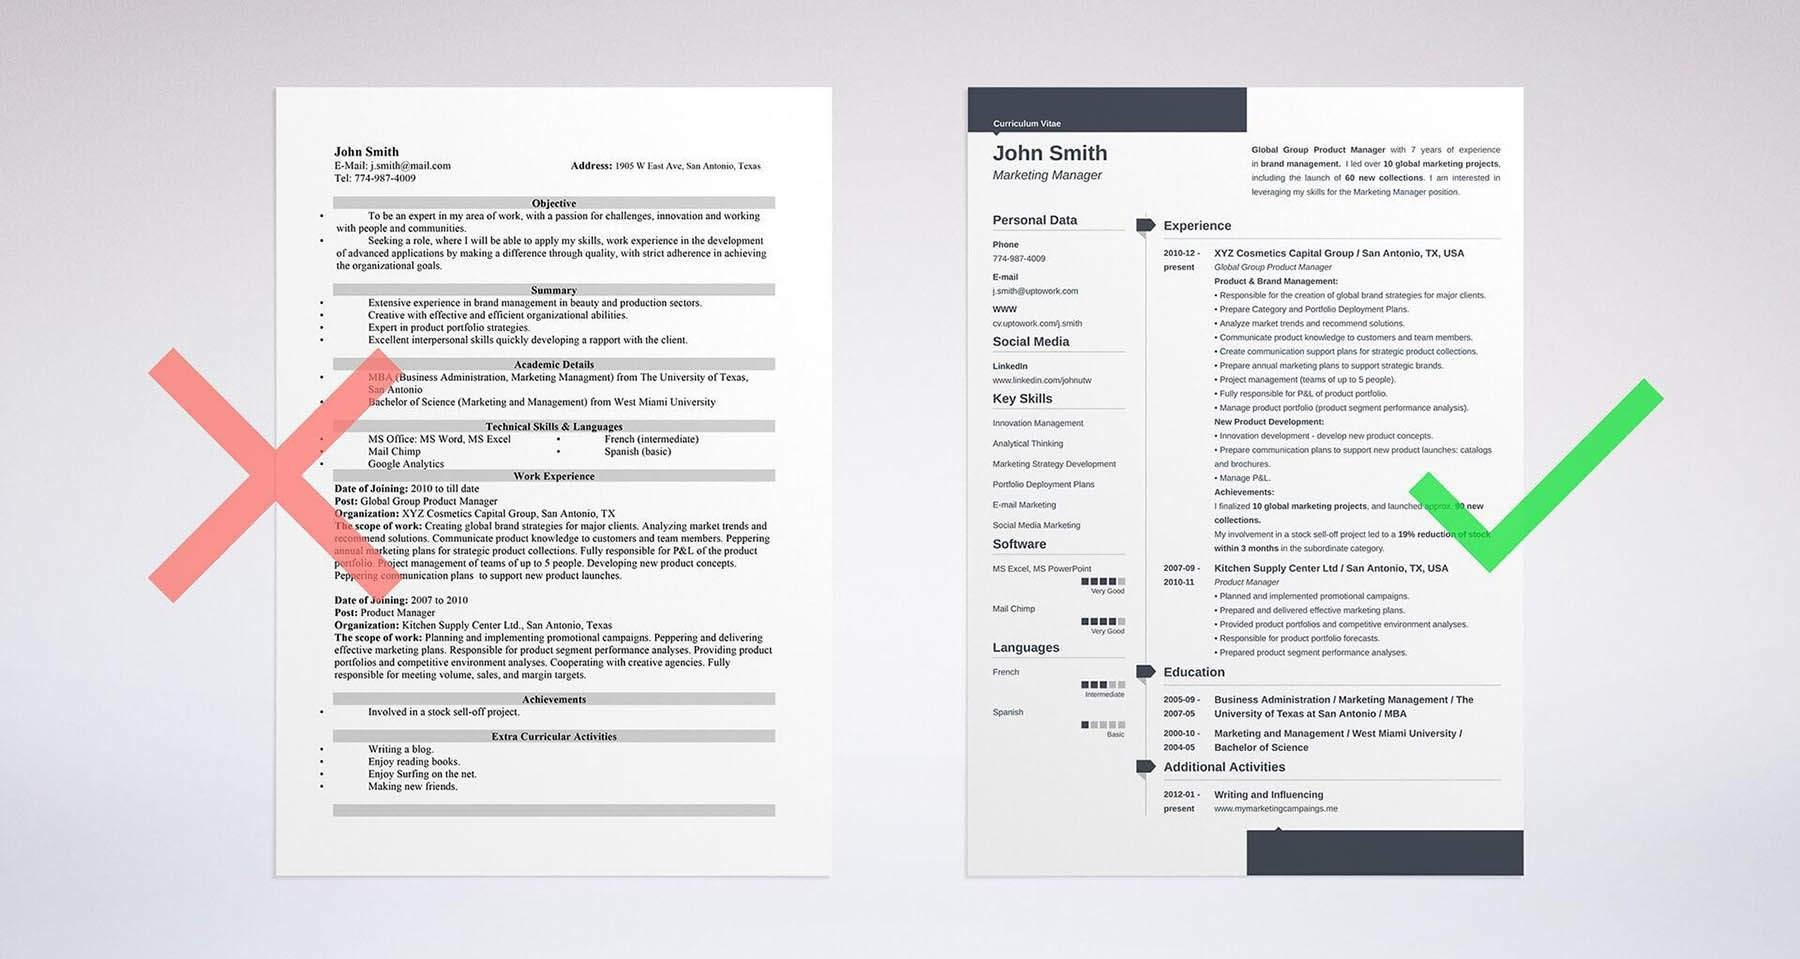 Sample Resume Objective   See +20 Resume Templates And Create Your Resume  Here  Resume Profile